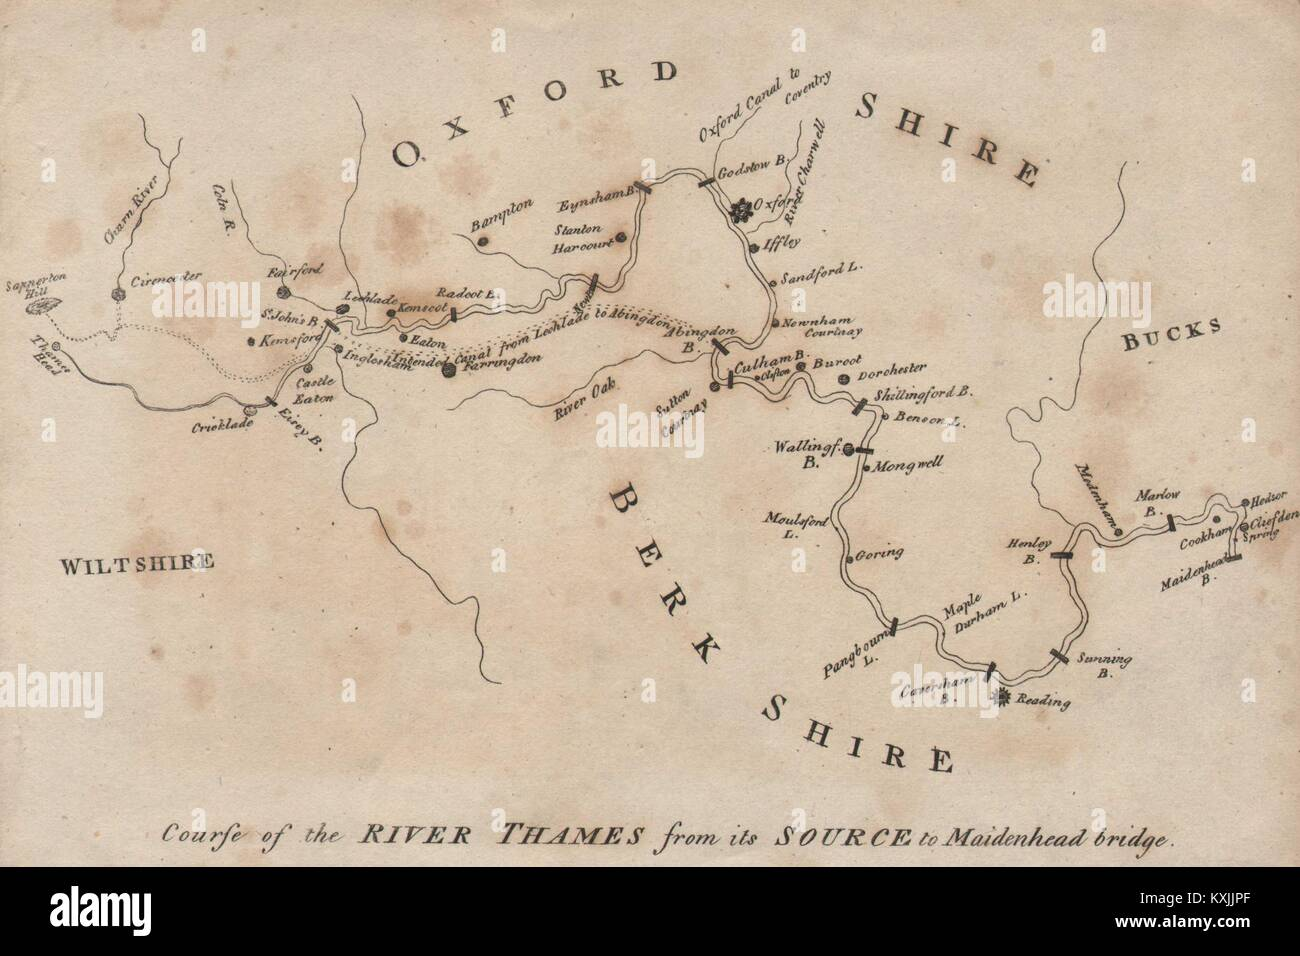 Course of the River Thames from its Source to Maidenhead Bridge 1792 old map Stock Photo